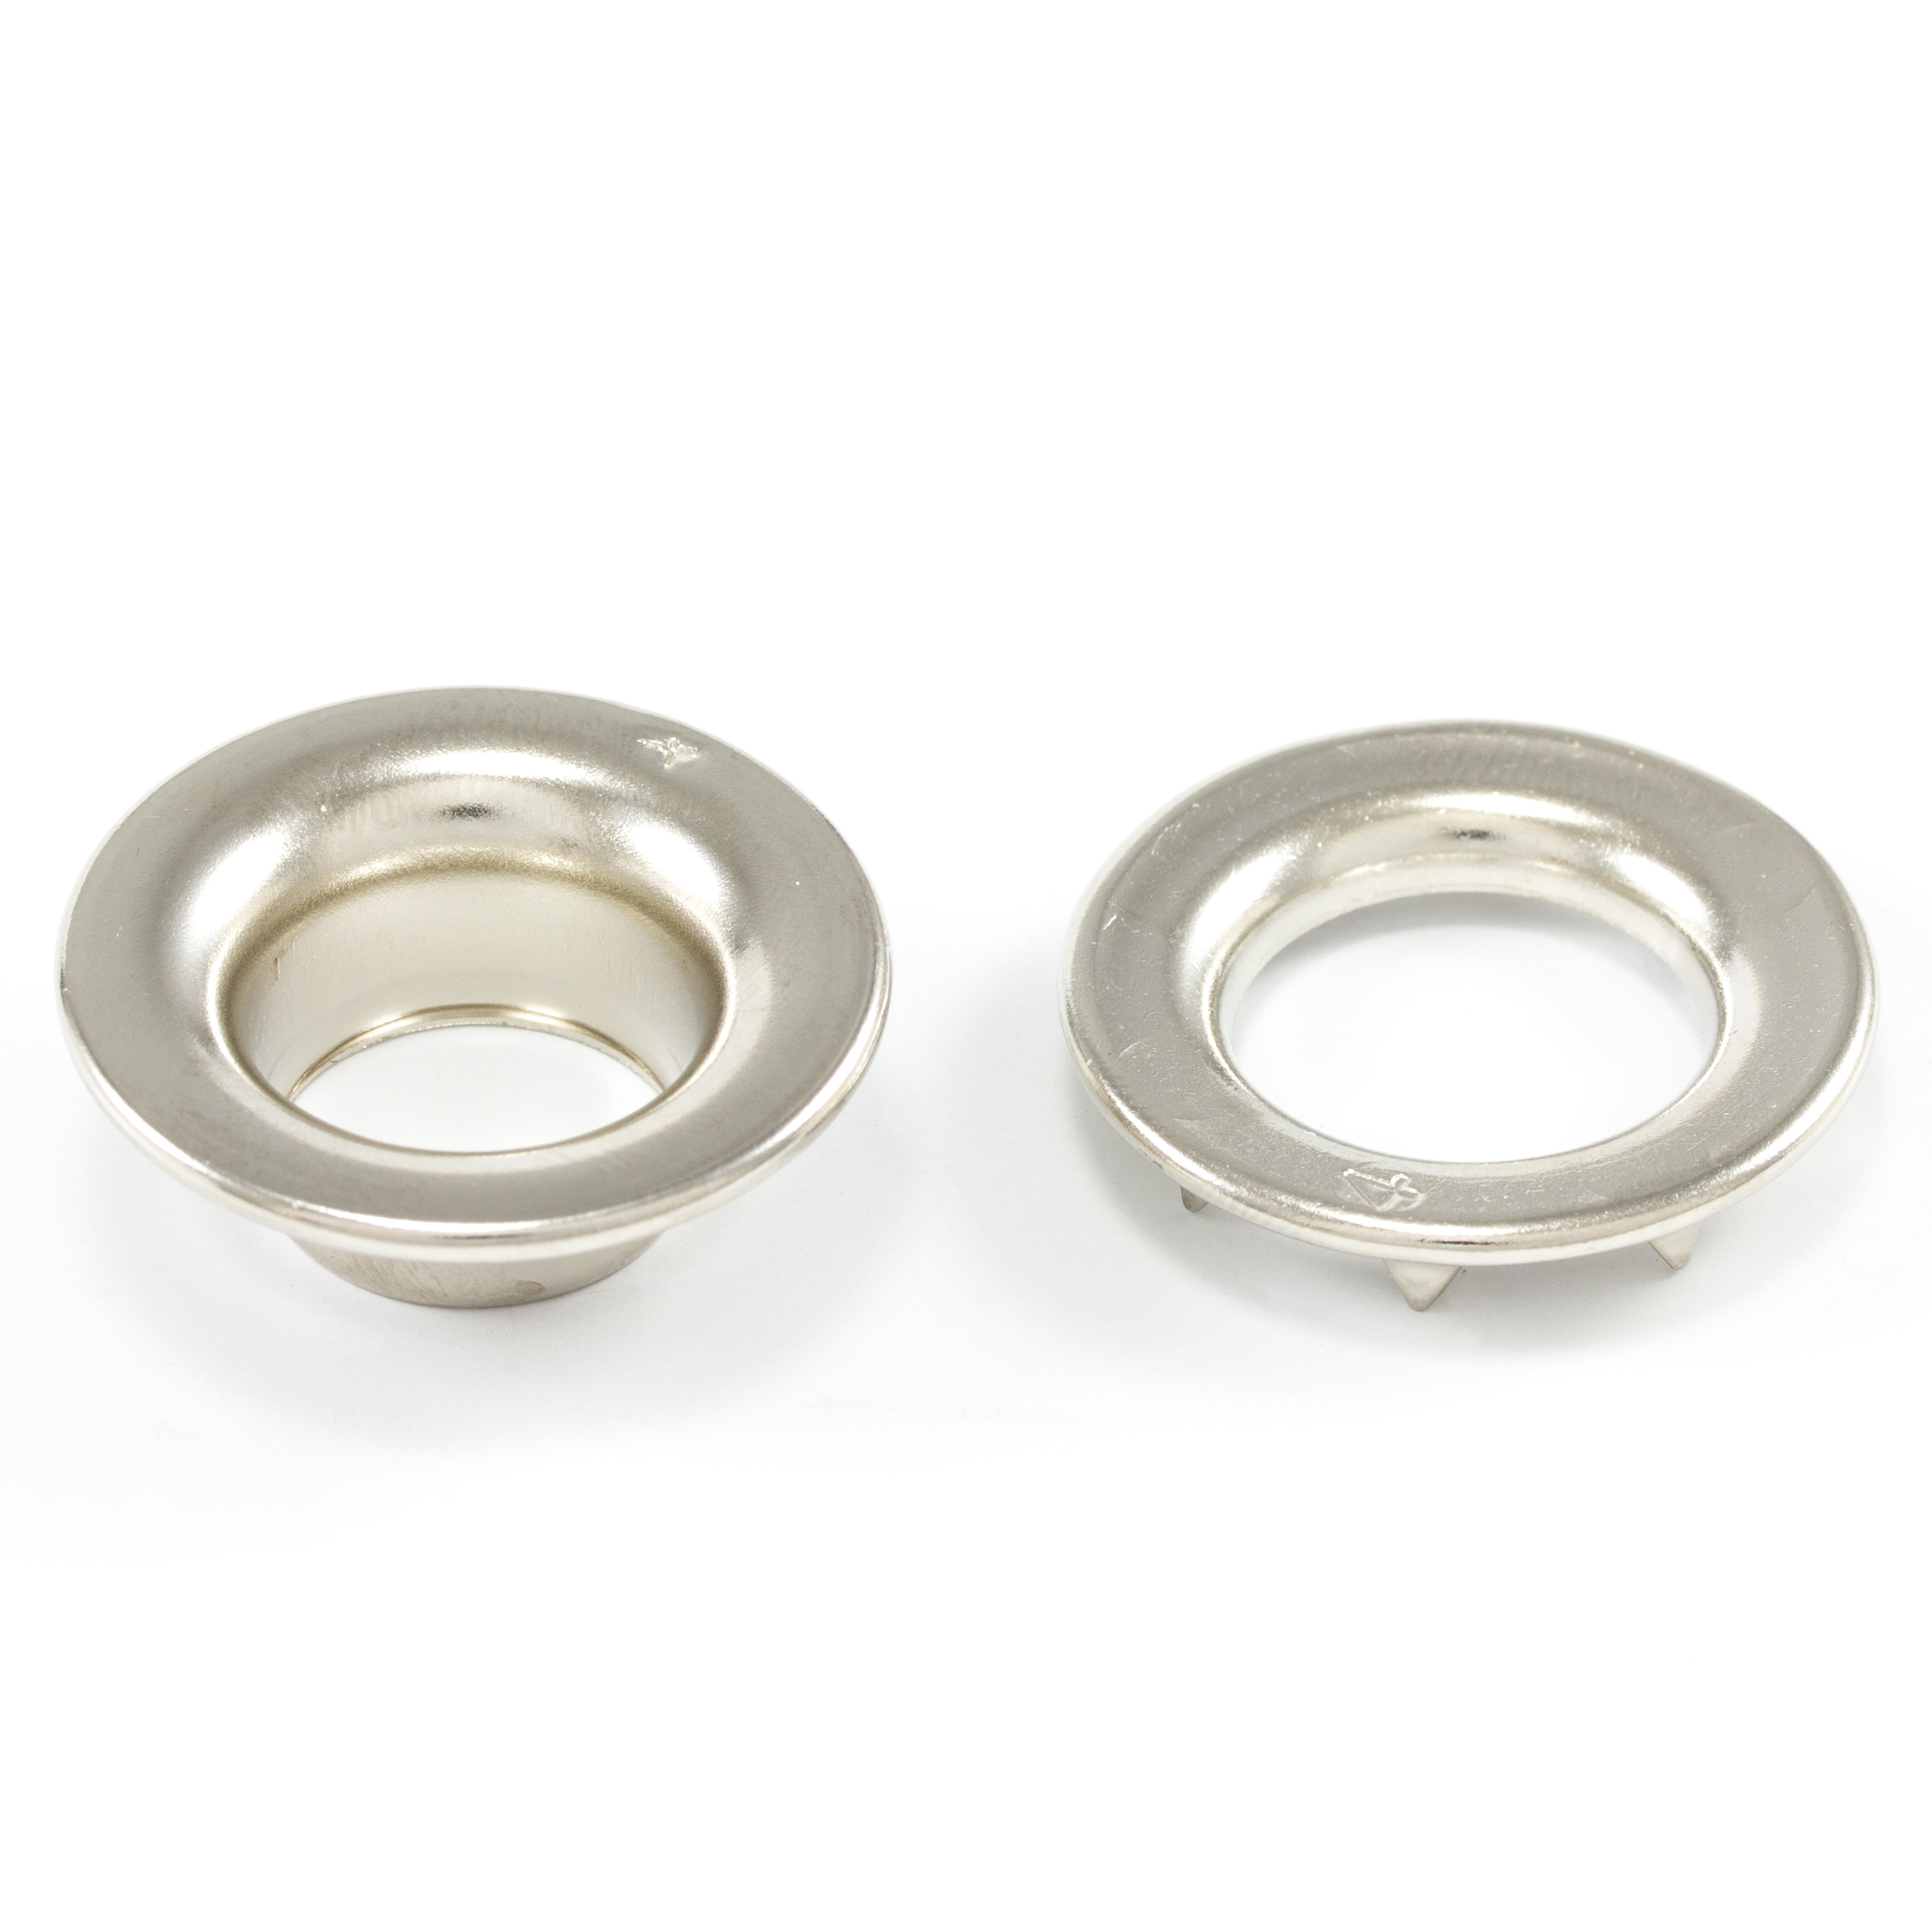 Thumbnail DOT Rolled Rim Grommet with Spur Washer #4 Nickel Plated Brass 9/16 1